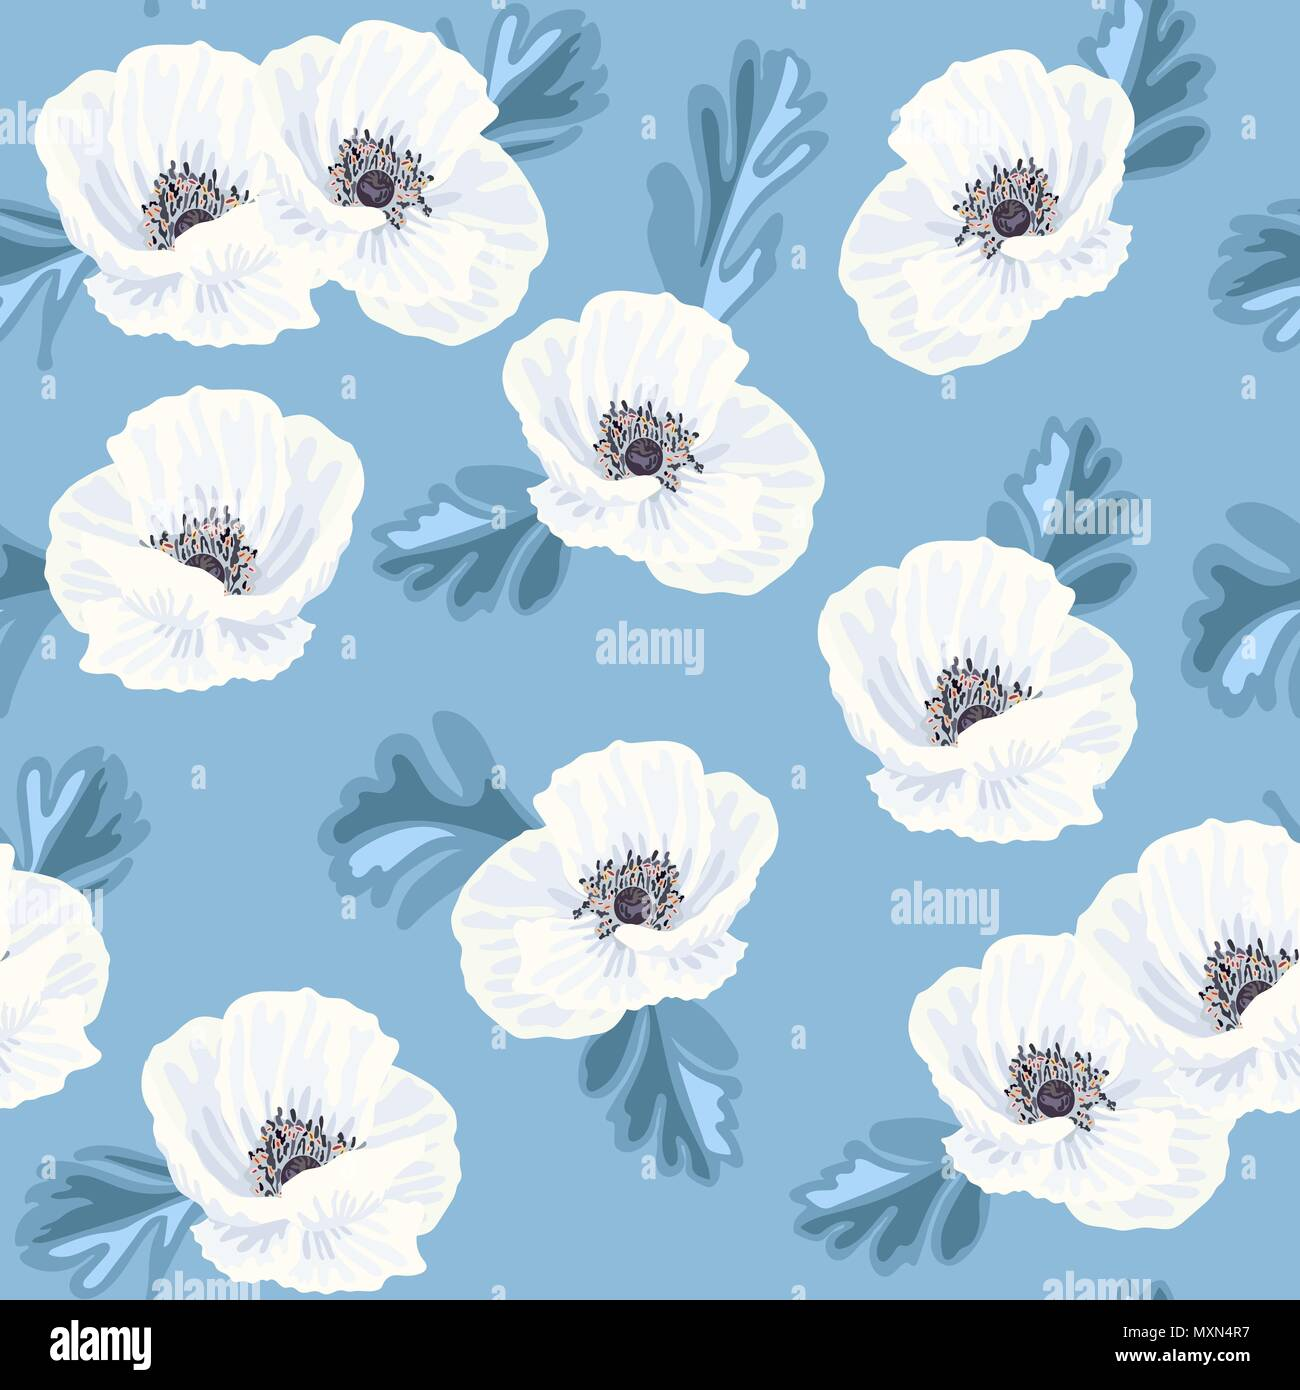 Tender white vector anemones and blue leaves on the blue background seamless pattern - Stock Vector